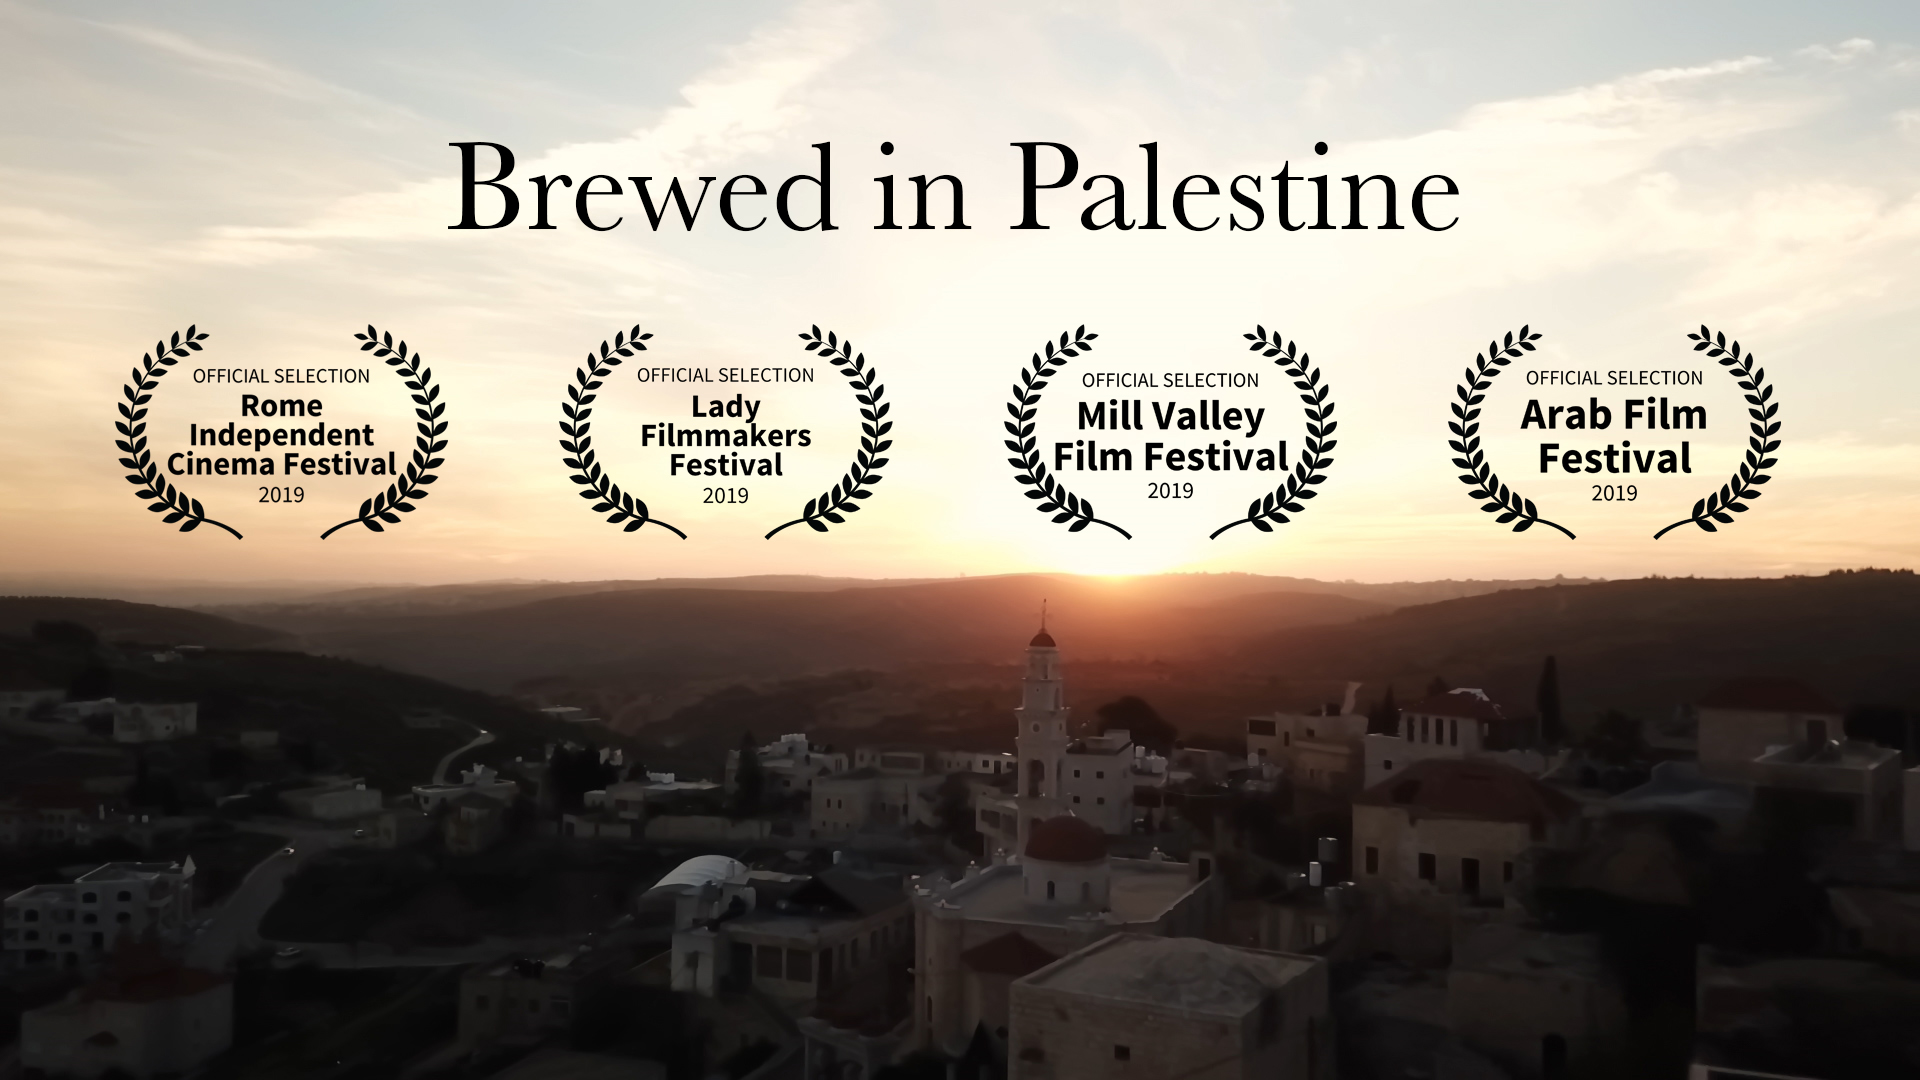 Brewed in Palestine poster